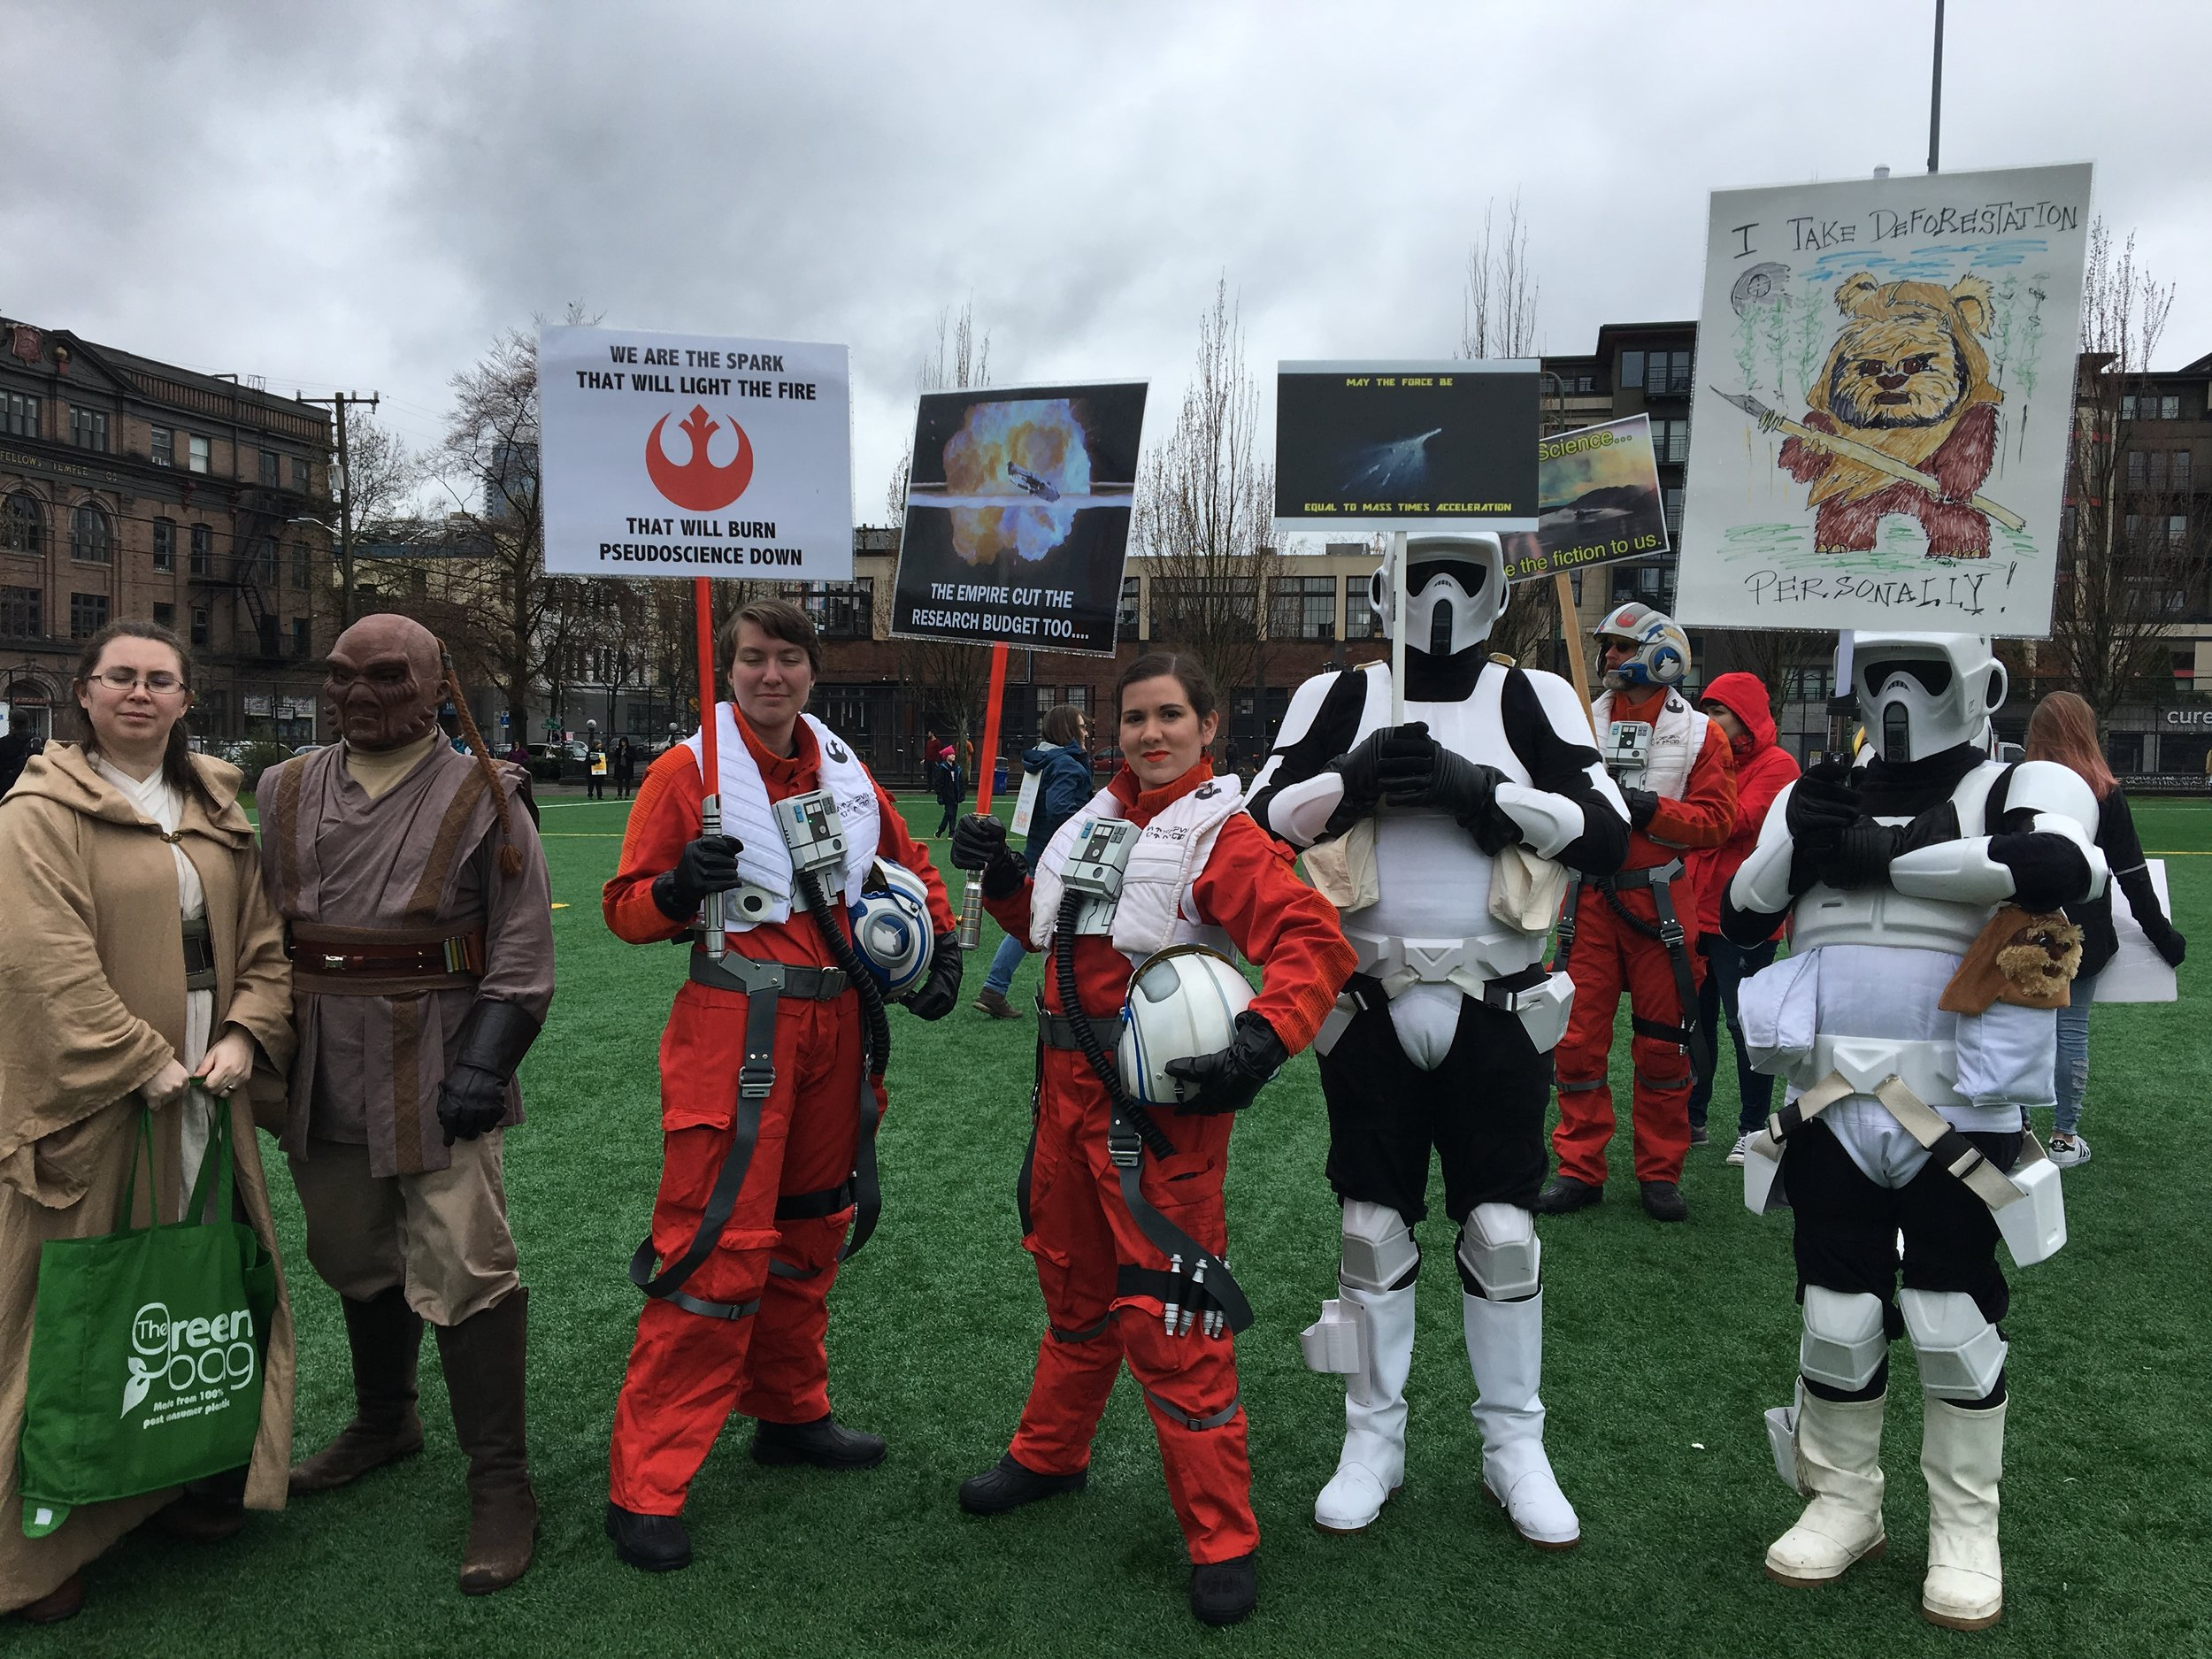 Science even brings the rebels and the empire together!